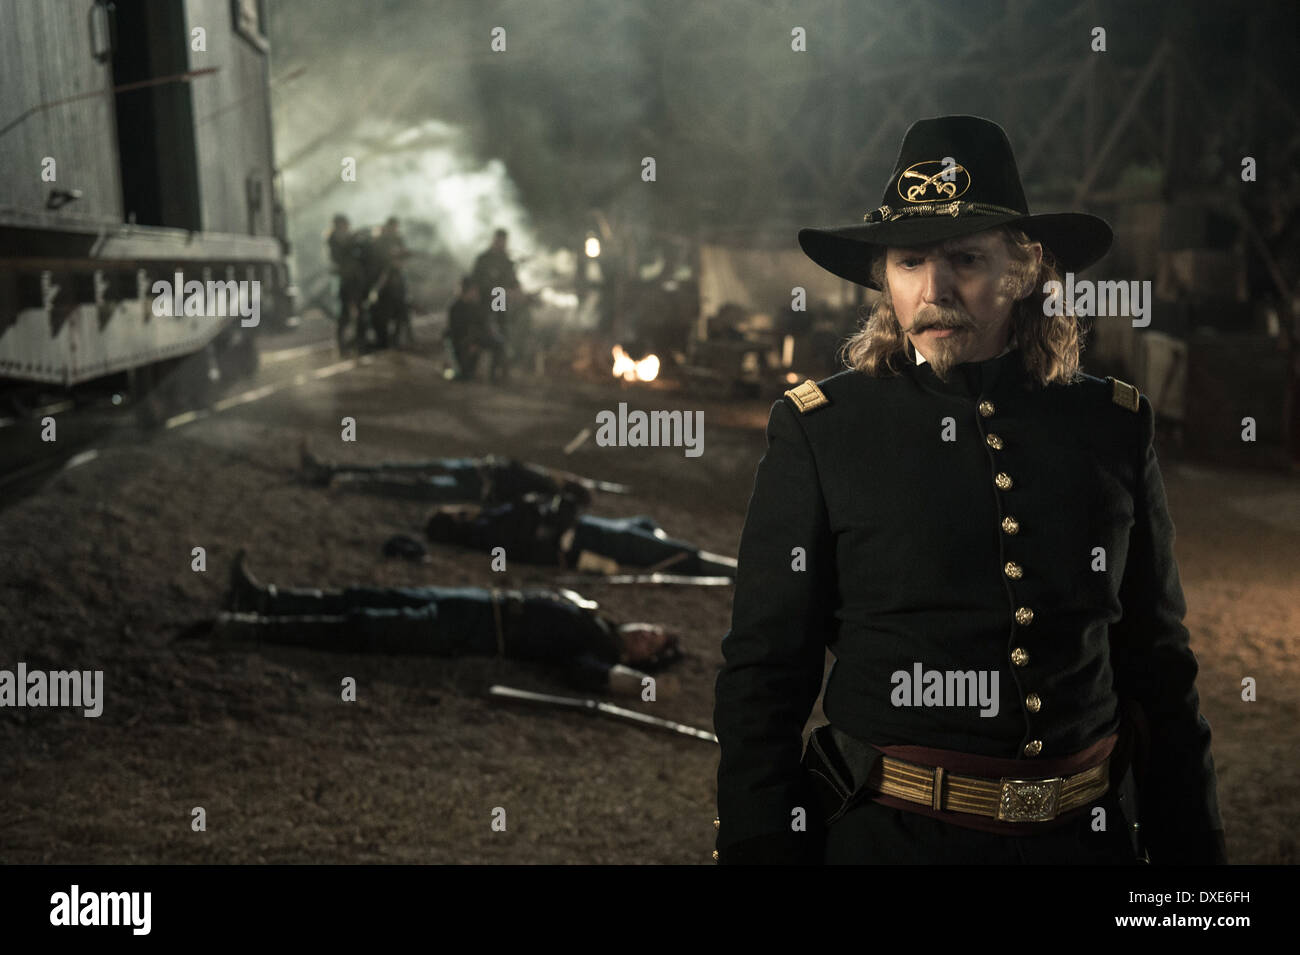 The The Lone Ranger - Stock Image